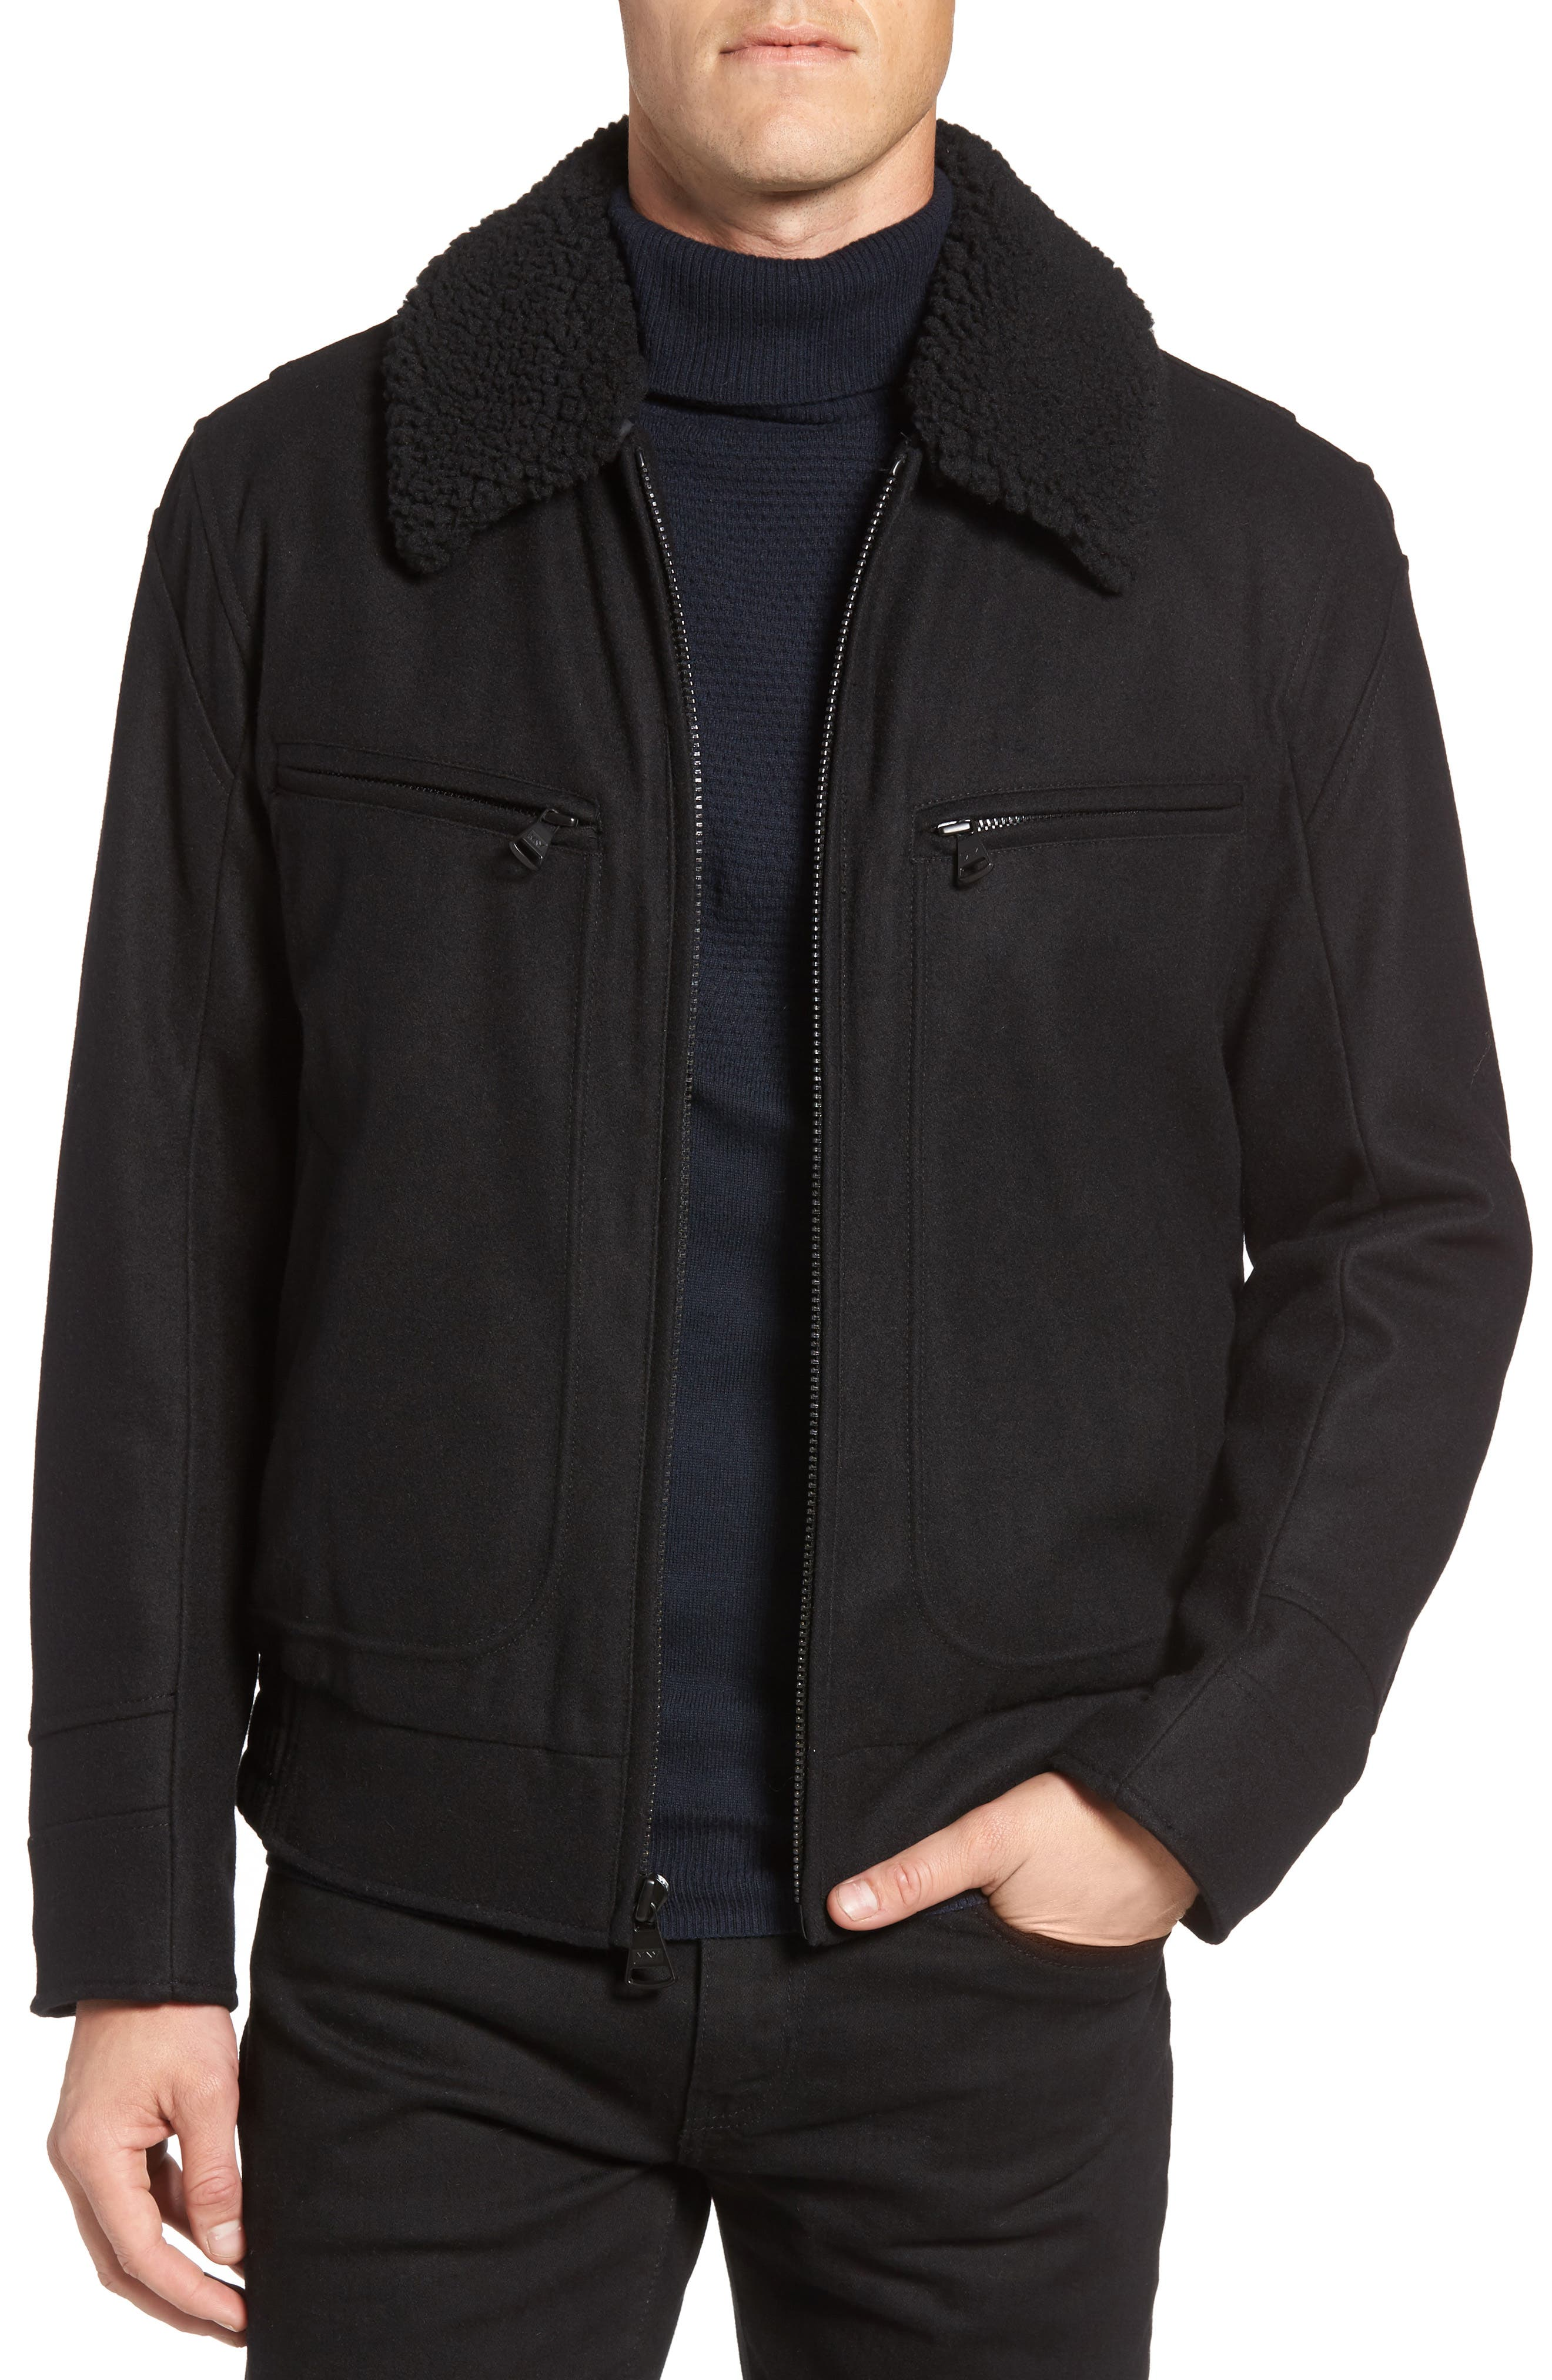 Concord Faux Shearling Aviator Jacket,                         Main,                         color, Black